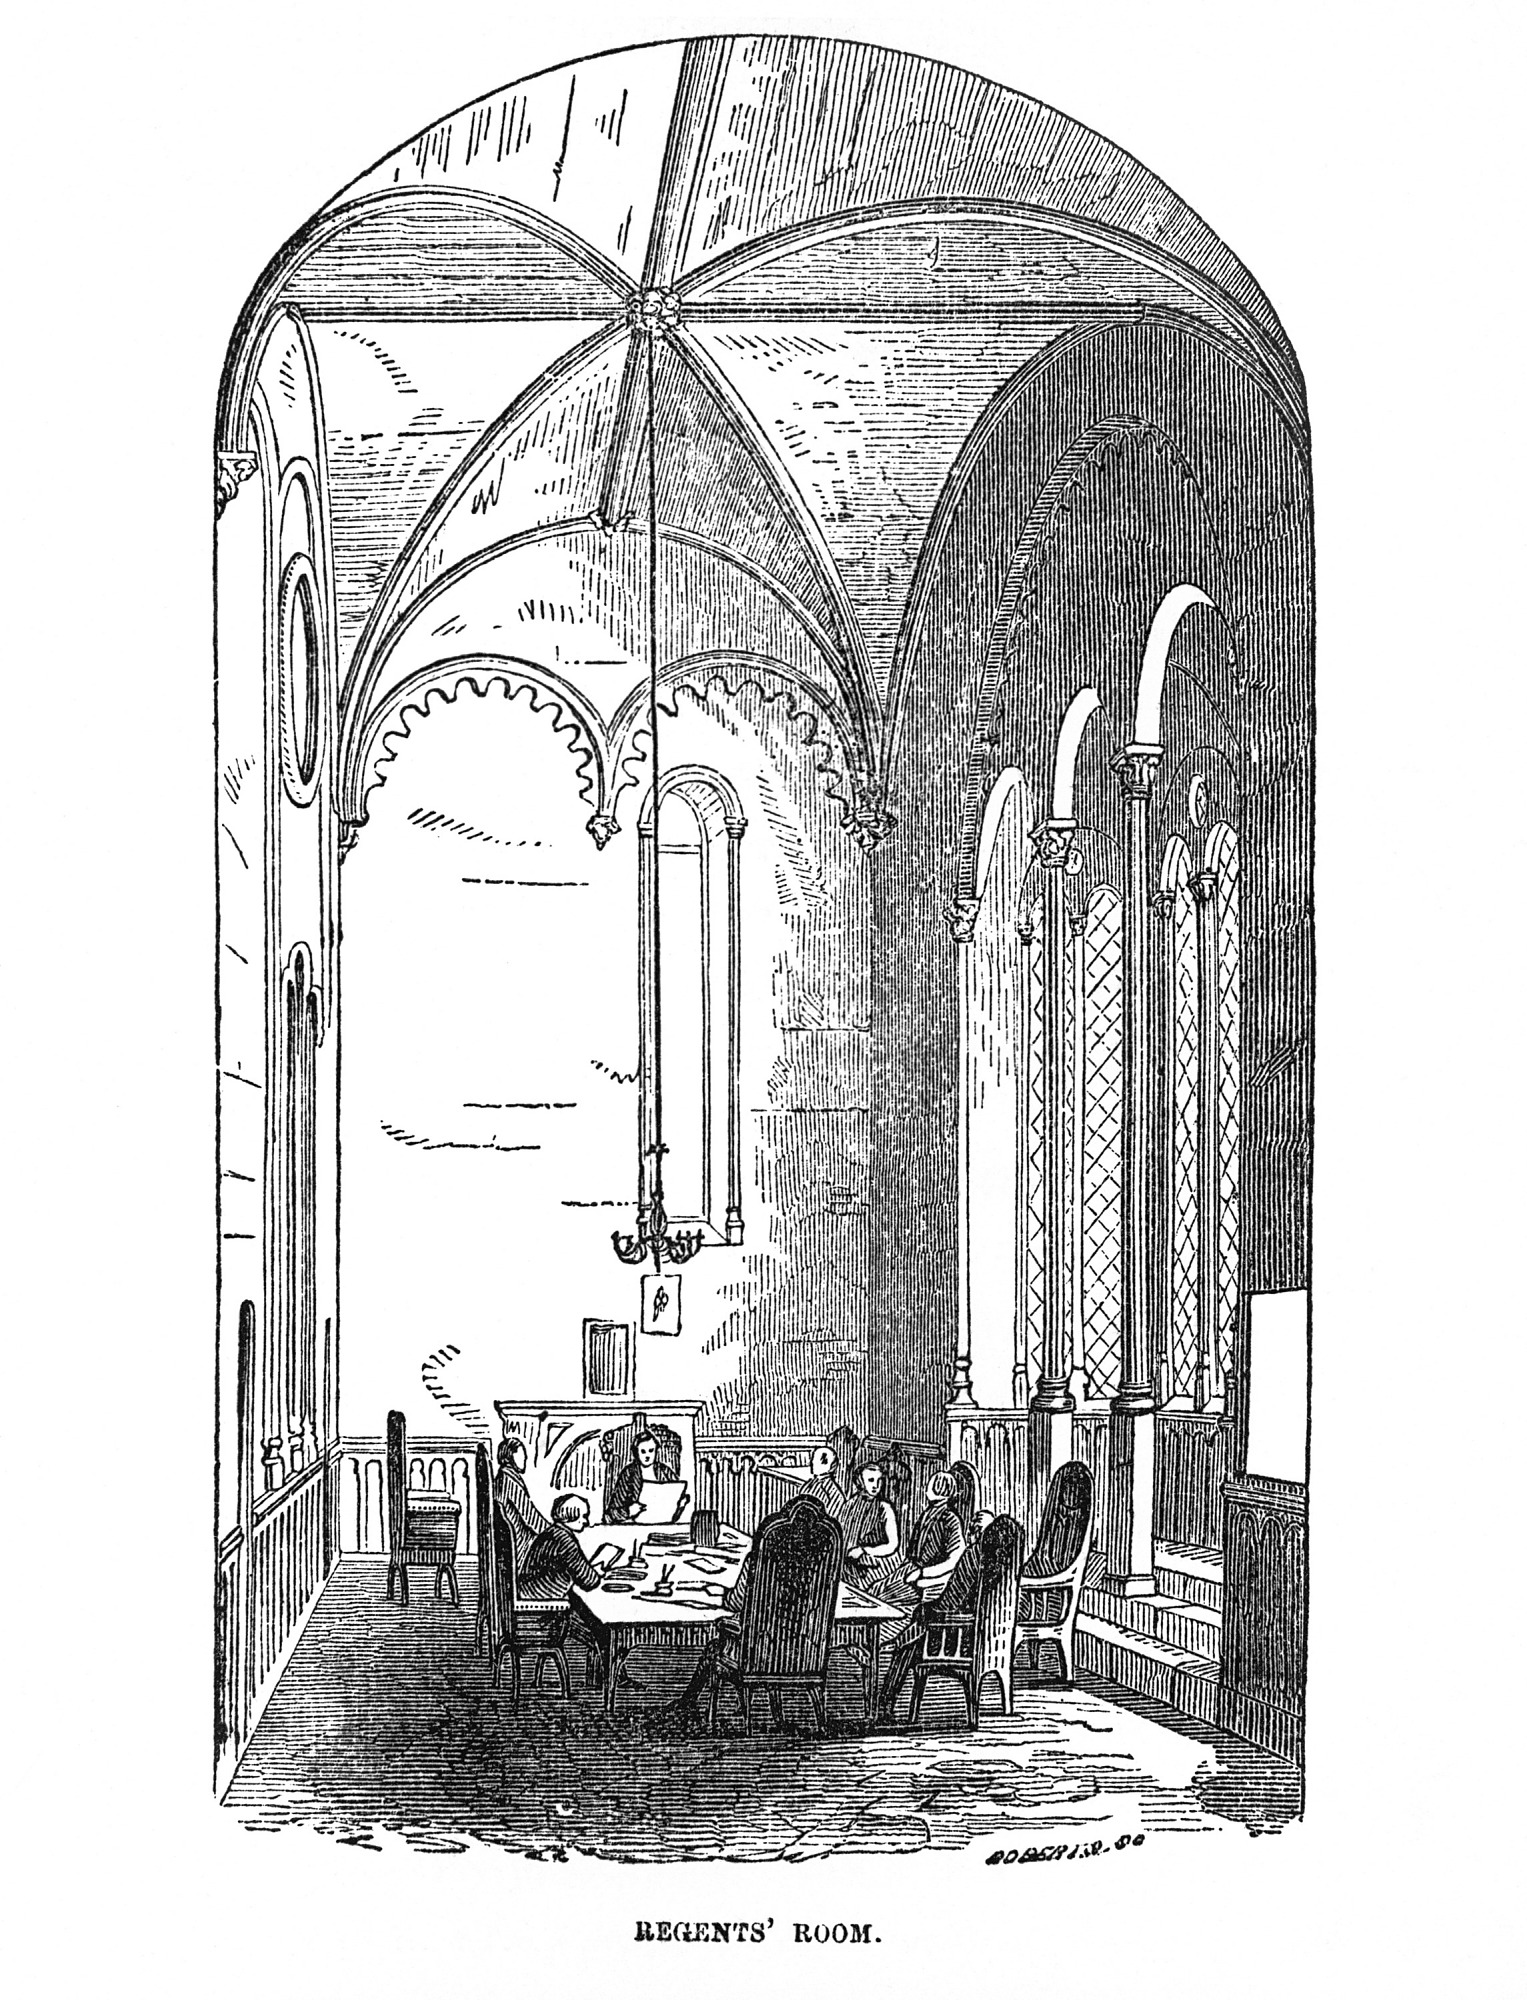 Engraving of the Regents' Room in the Smithsonian Institution Building showing Regents seated at a table conducting business, nineteenth century view. The engraving was published in the Guidebook of 1857.